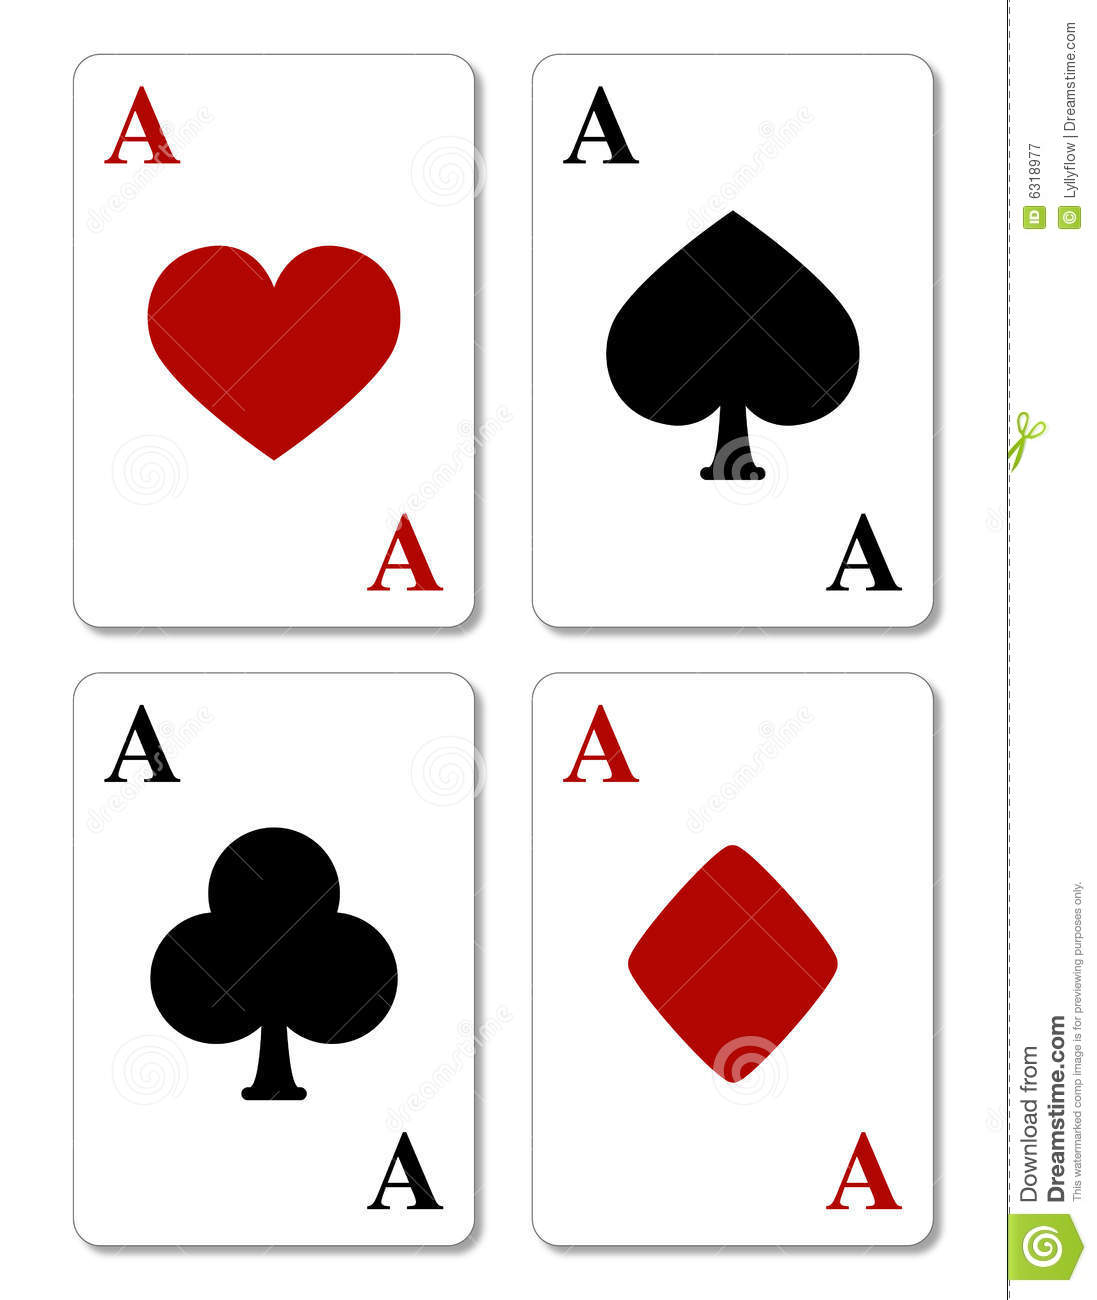 images of 4 aces cards pics